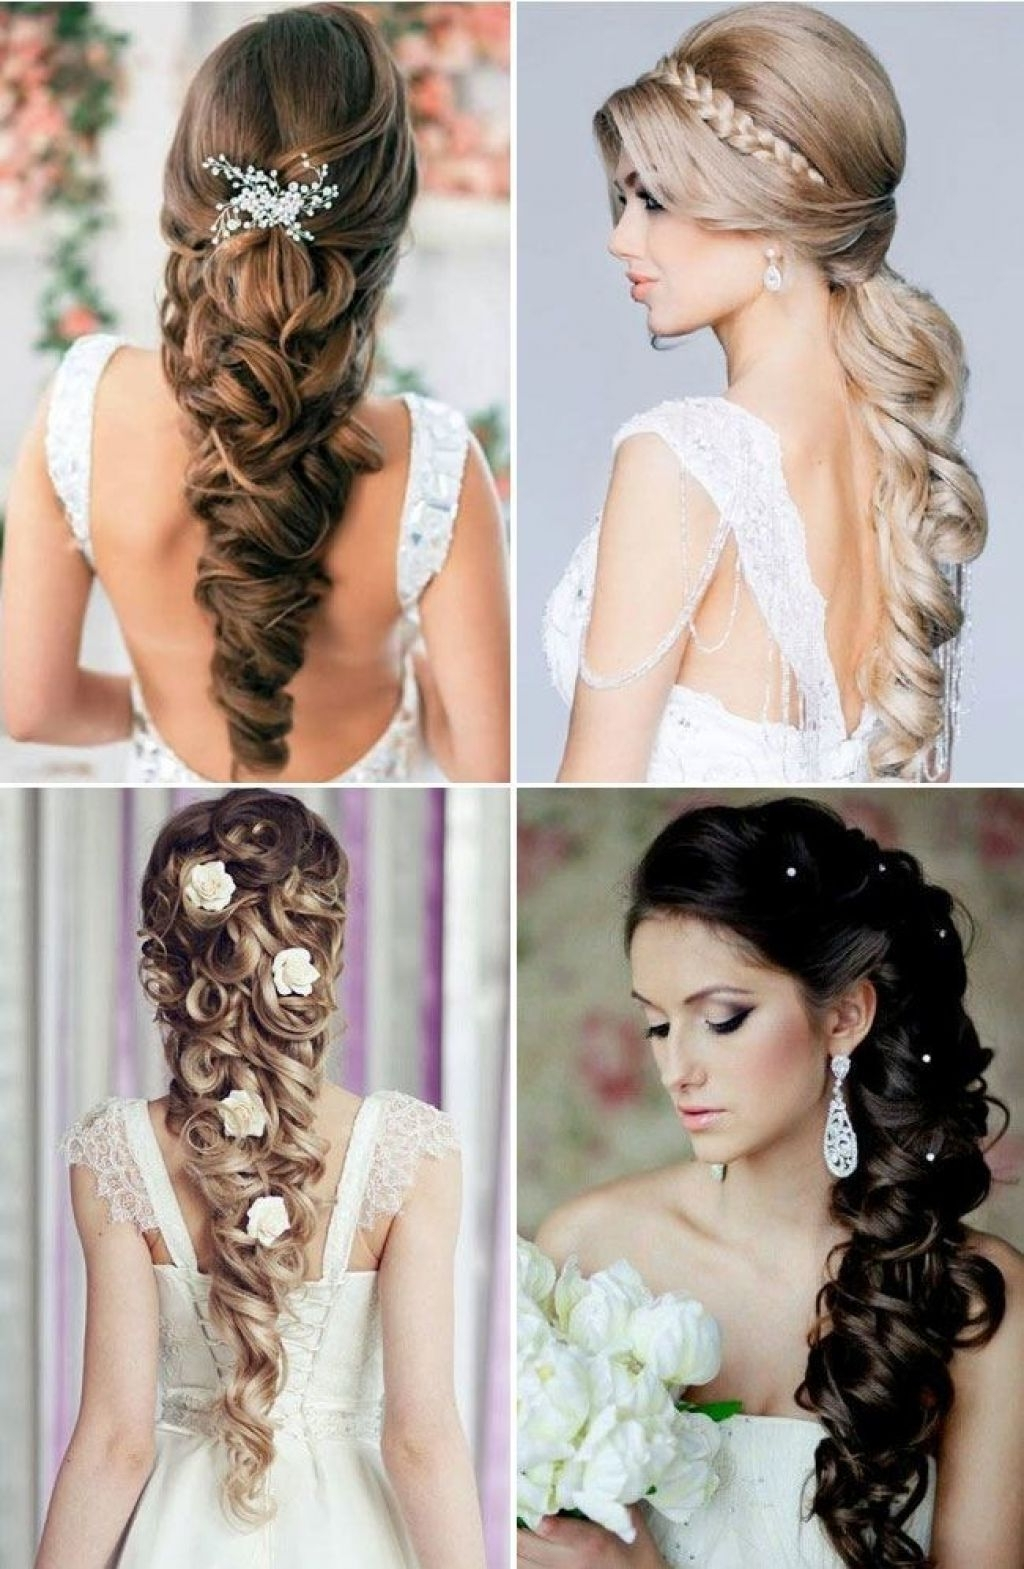 2017 Wedding Updos For Long Hair With Braids In Updo Hairstyles Long Curly Hair Prom Updos Simple Hairstyle Ideas (View 2 of 15)